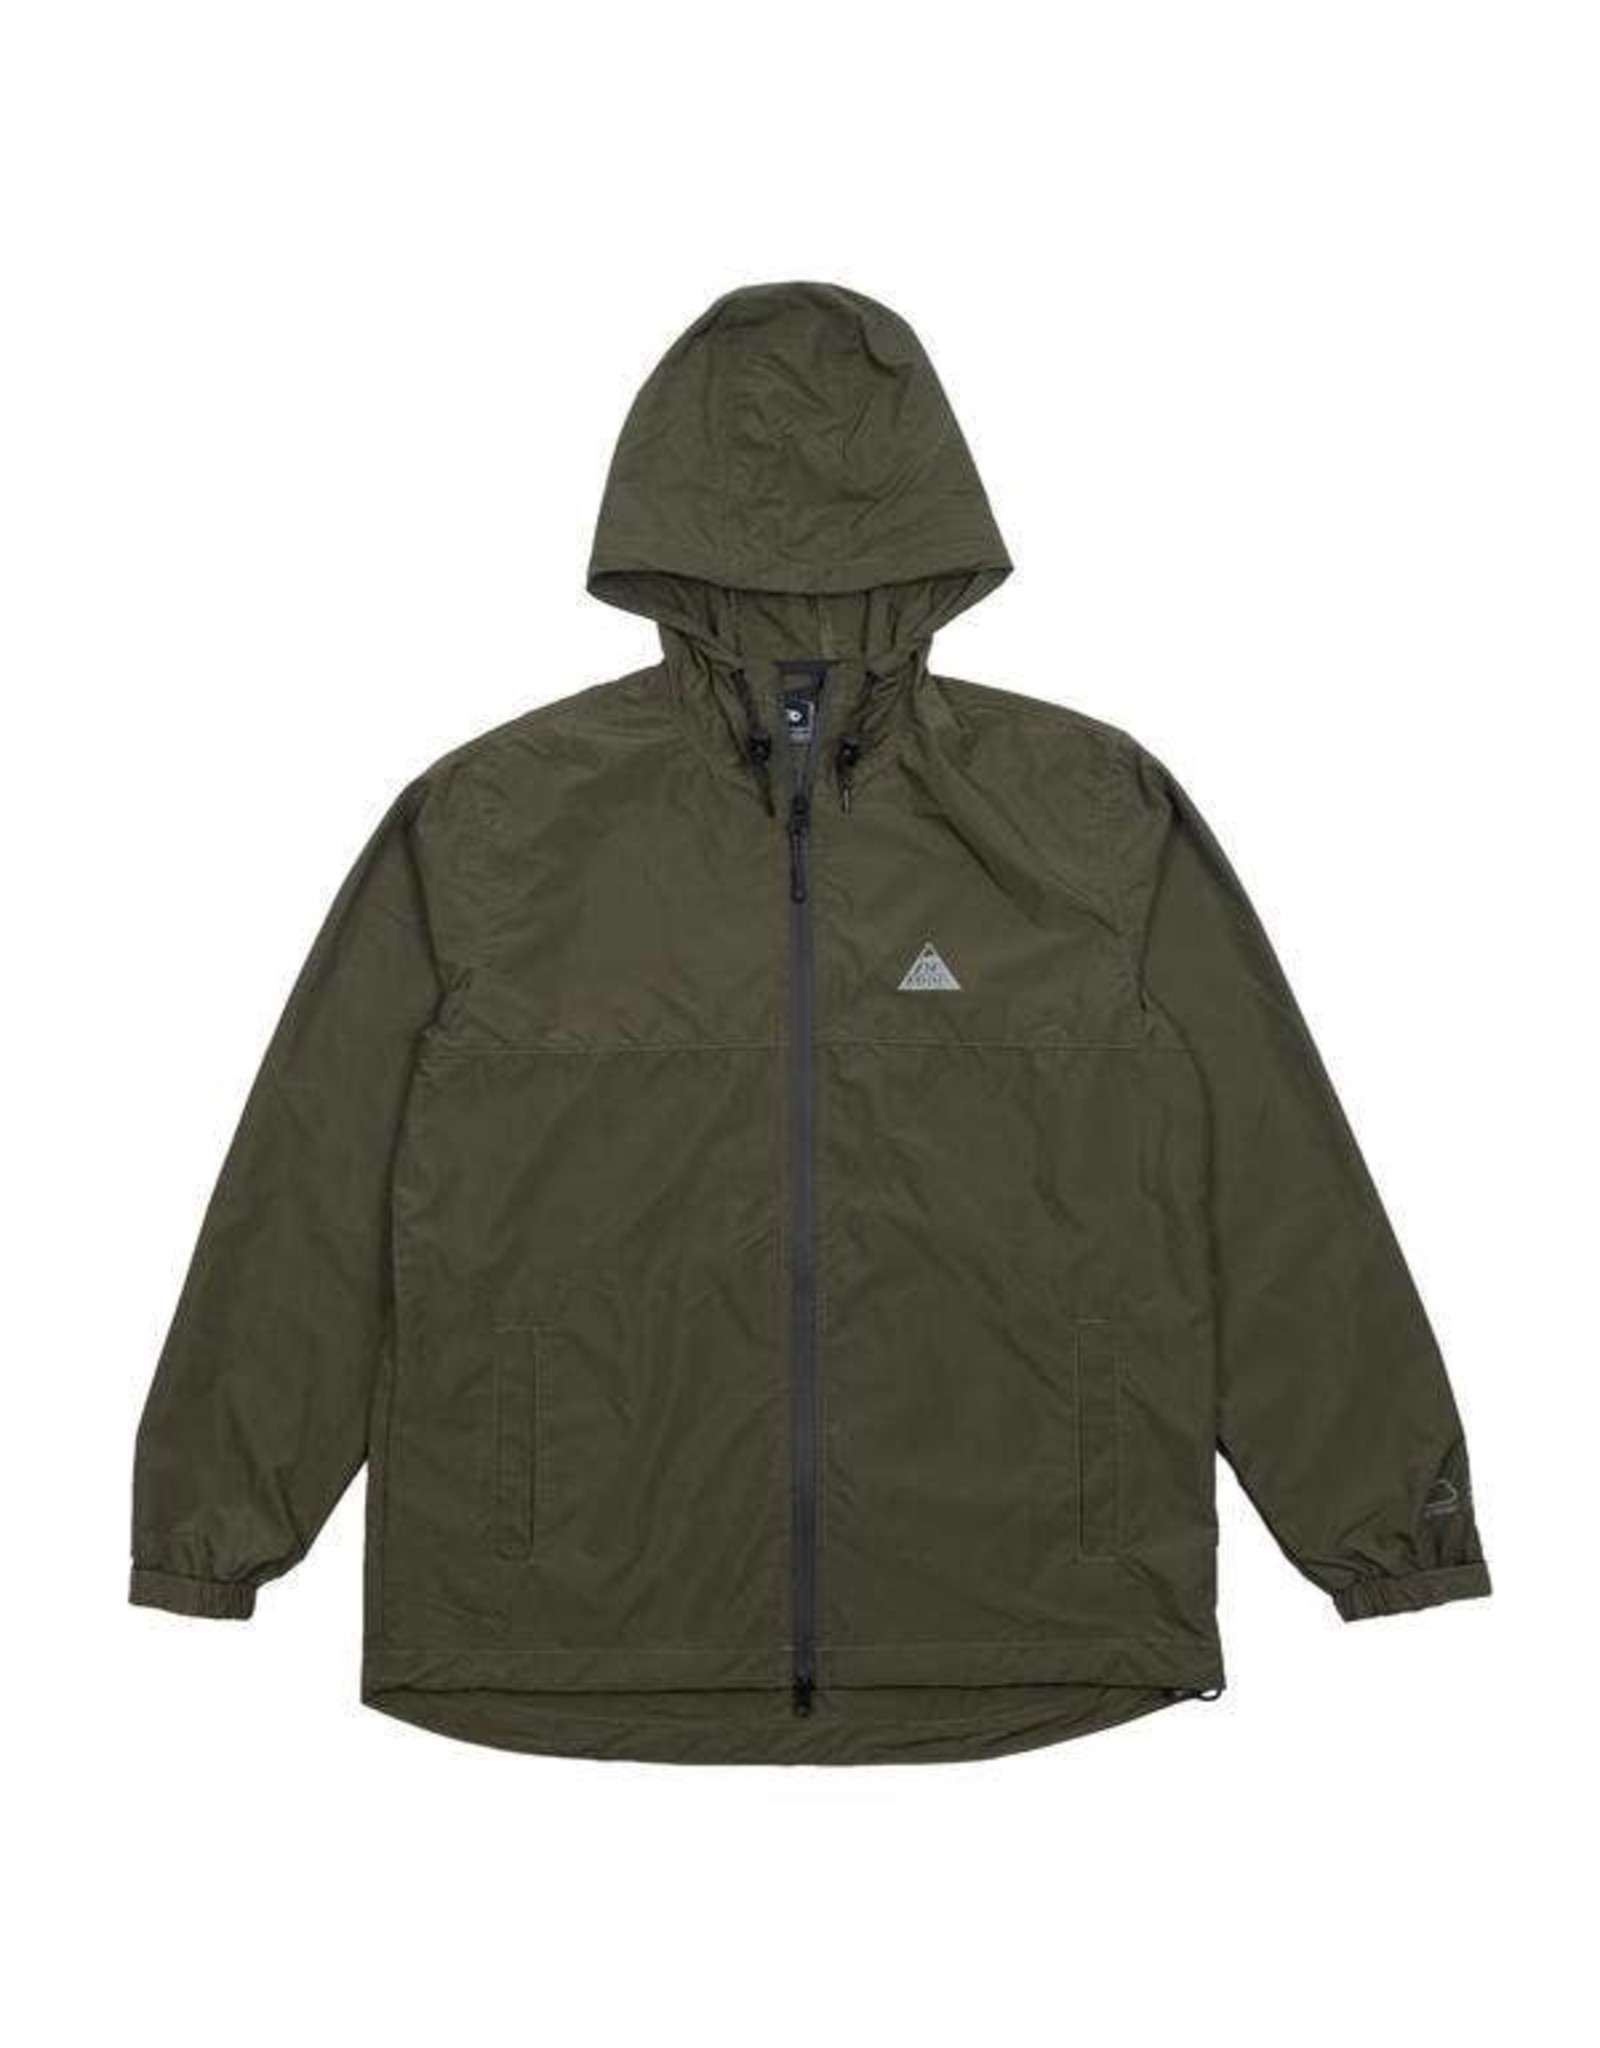 All Good Vert Elevation Jacket